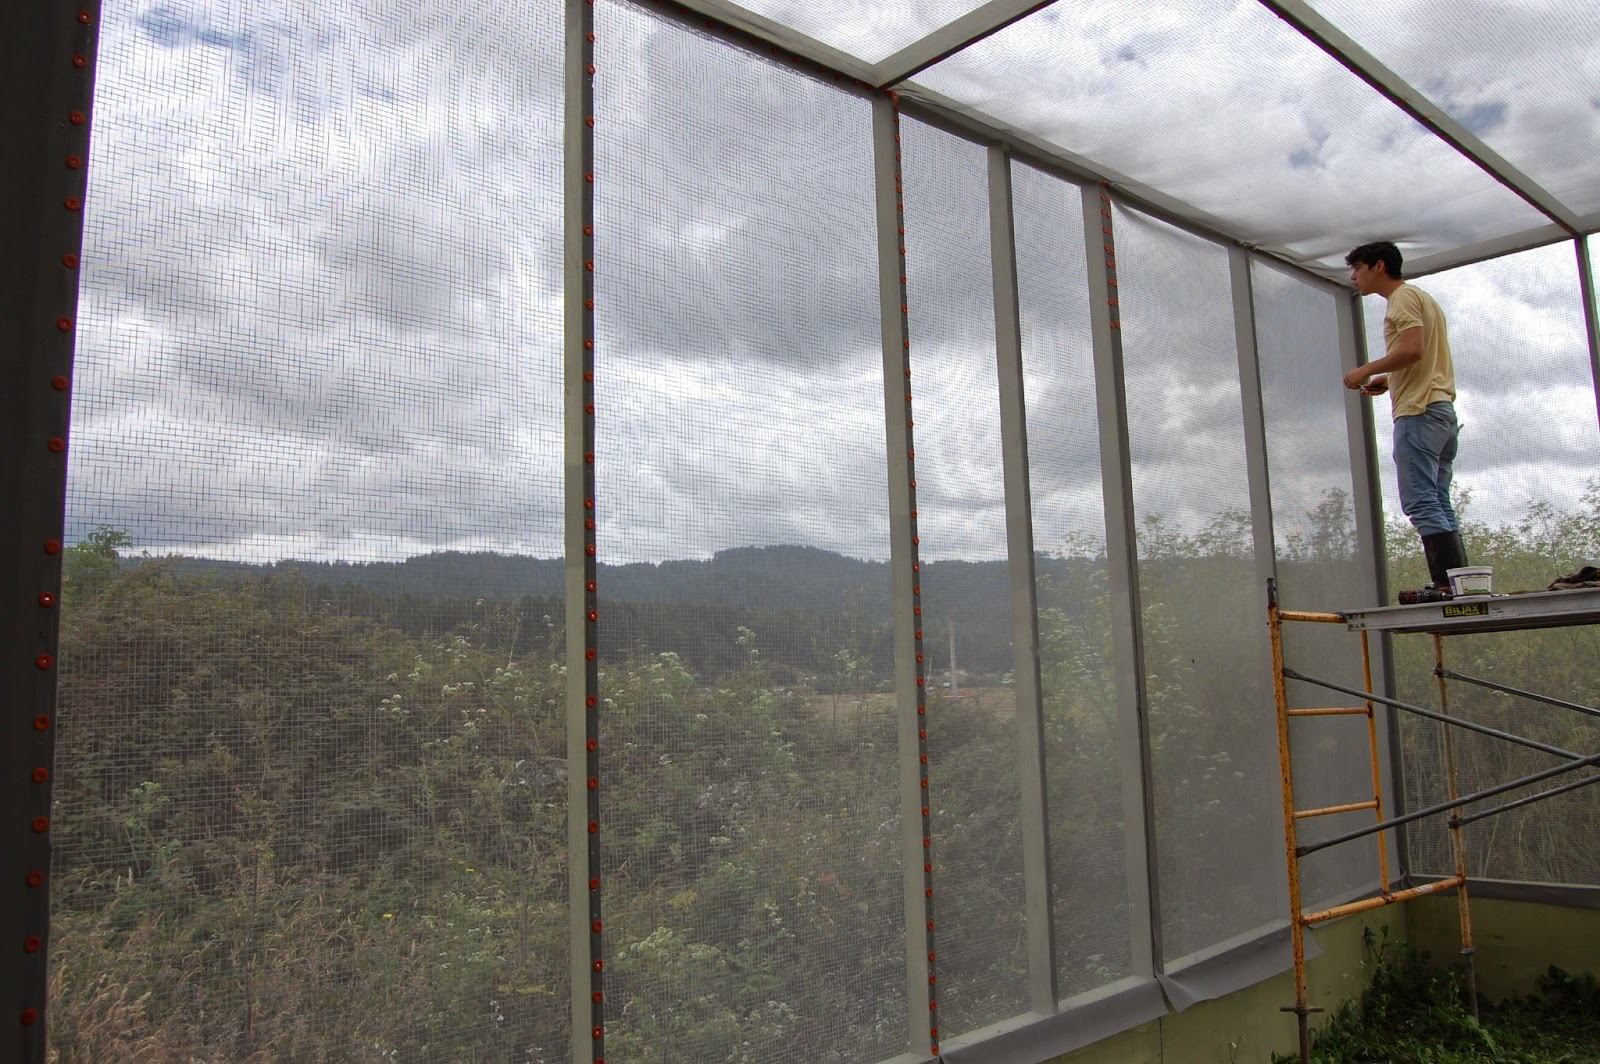 Large Aviary at Humboldt Wildlife Care Center Nears Completion ...